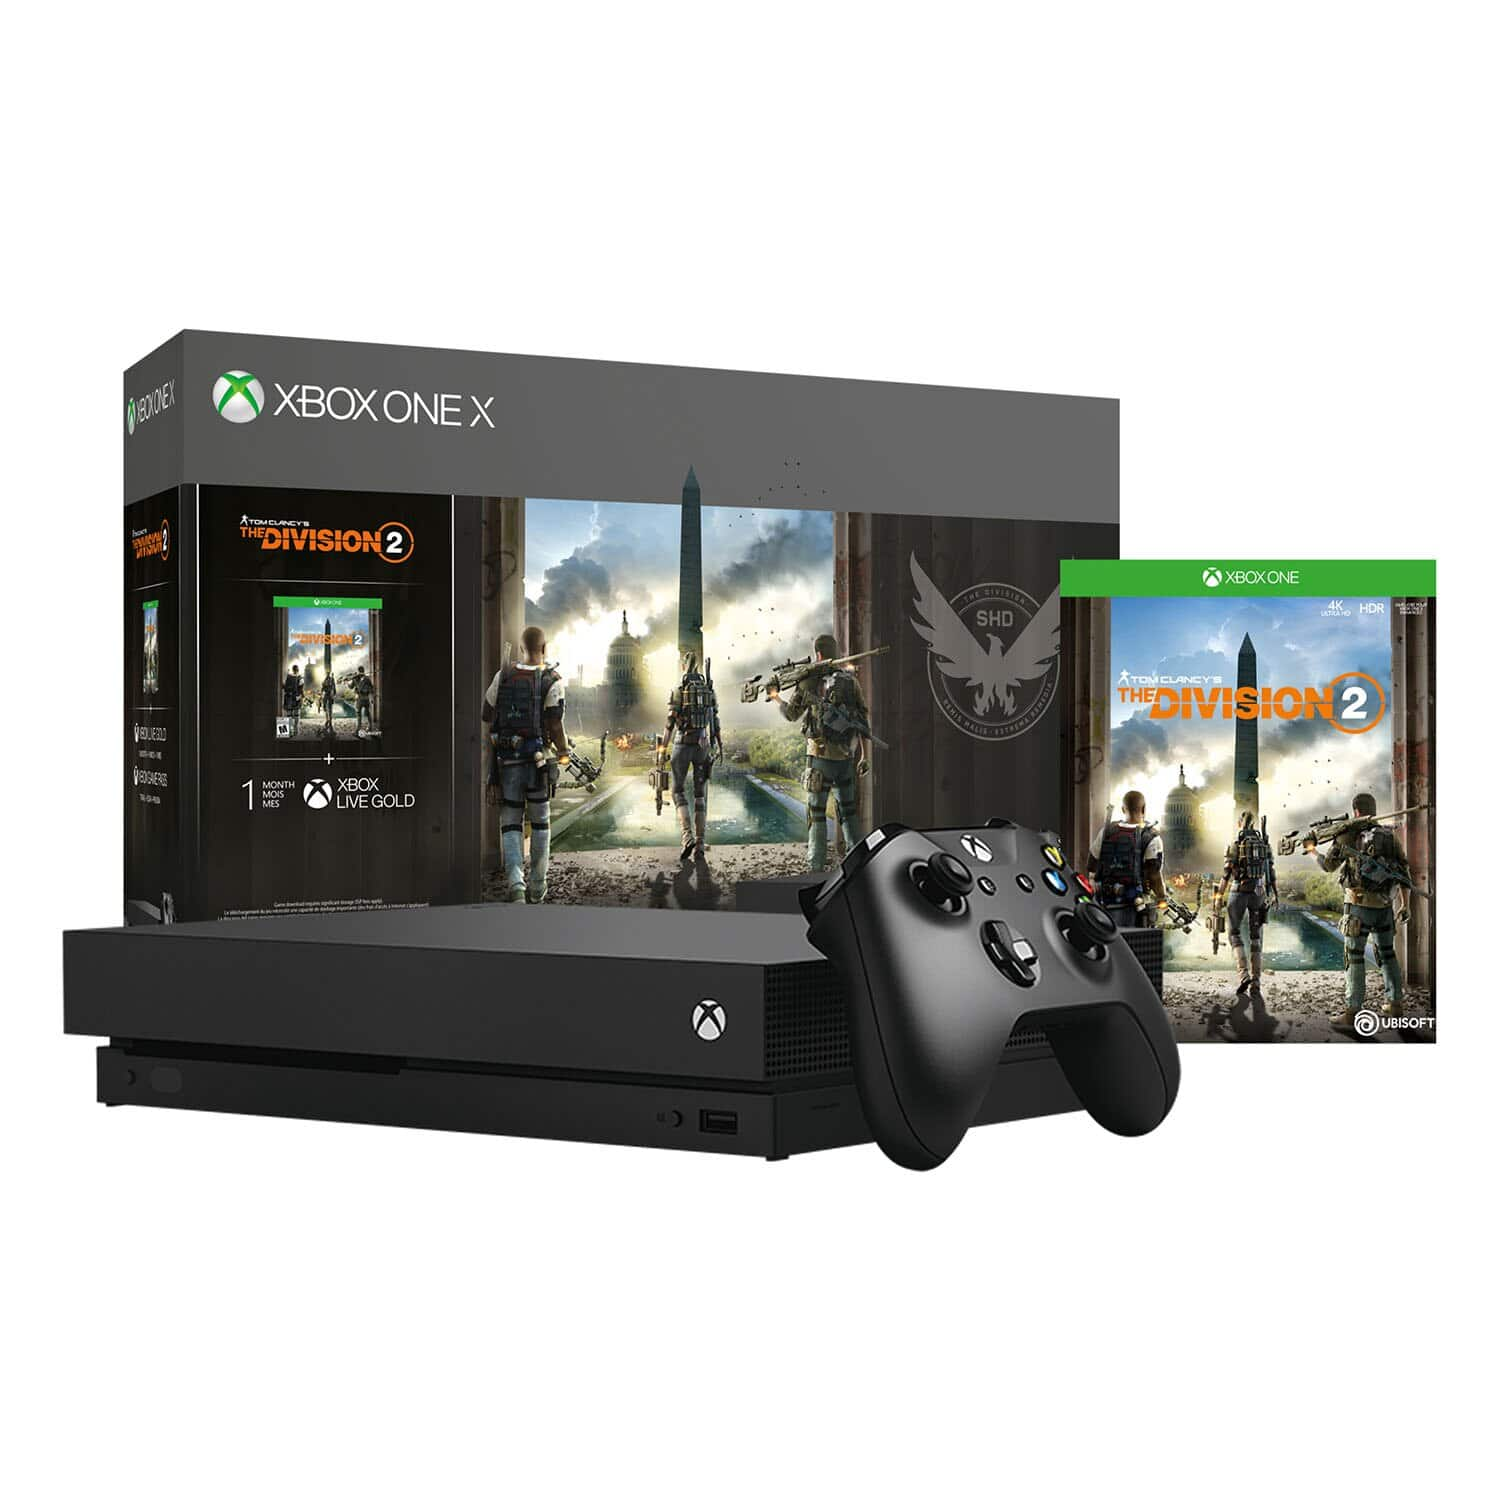 XBOX ONE X 1TB CONSOLE/TOM CLANCYS THE DIVISION 2 BUNDLE - $287.99 + 20% Back Rakuten Points + 1% Cash Back